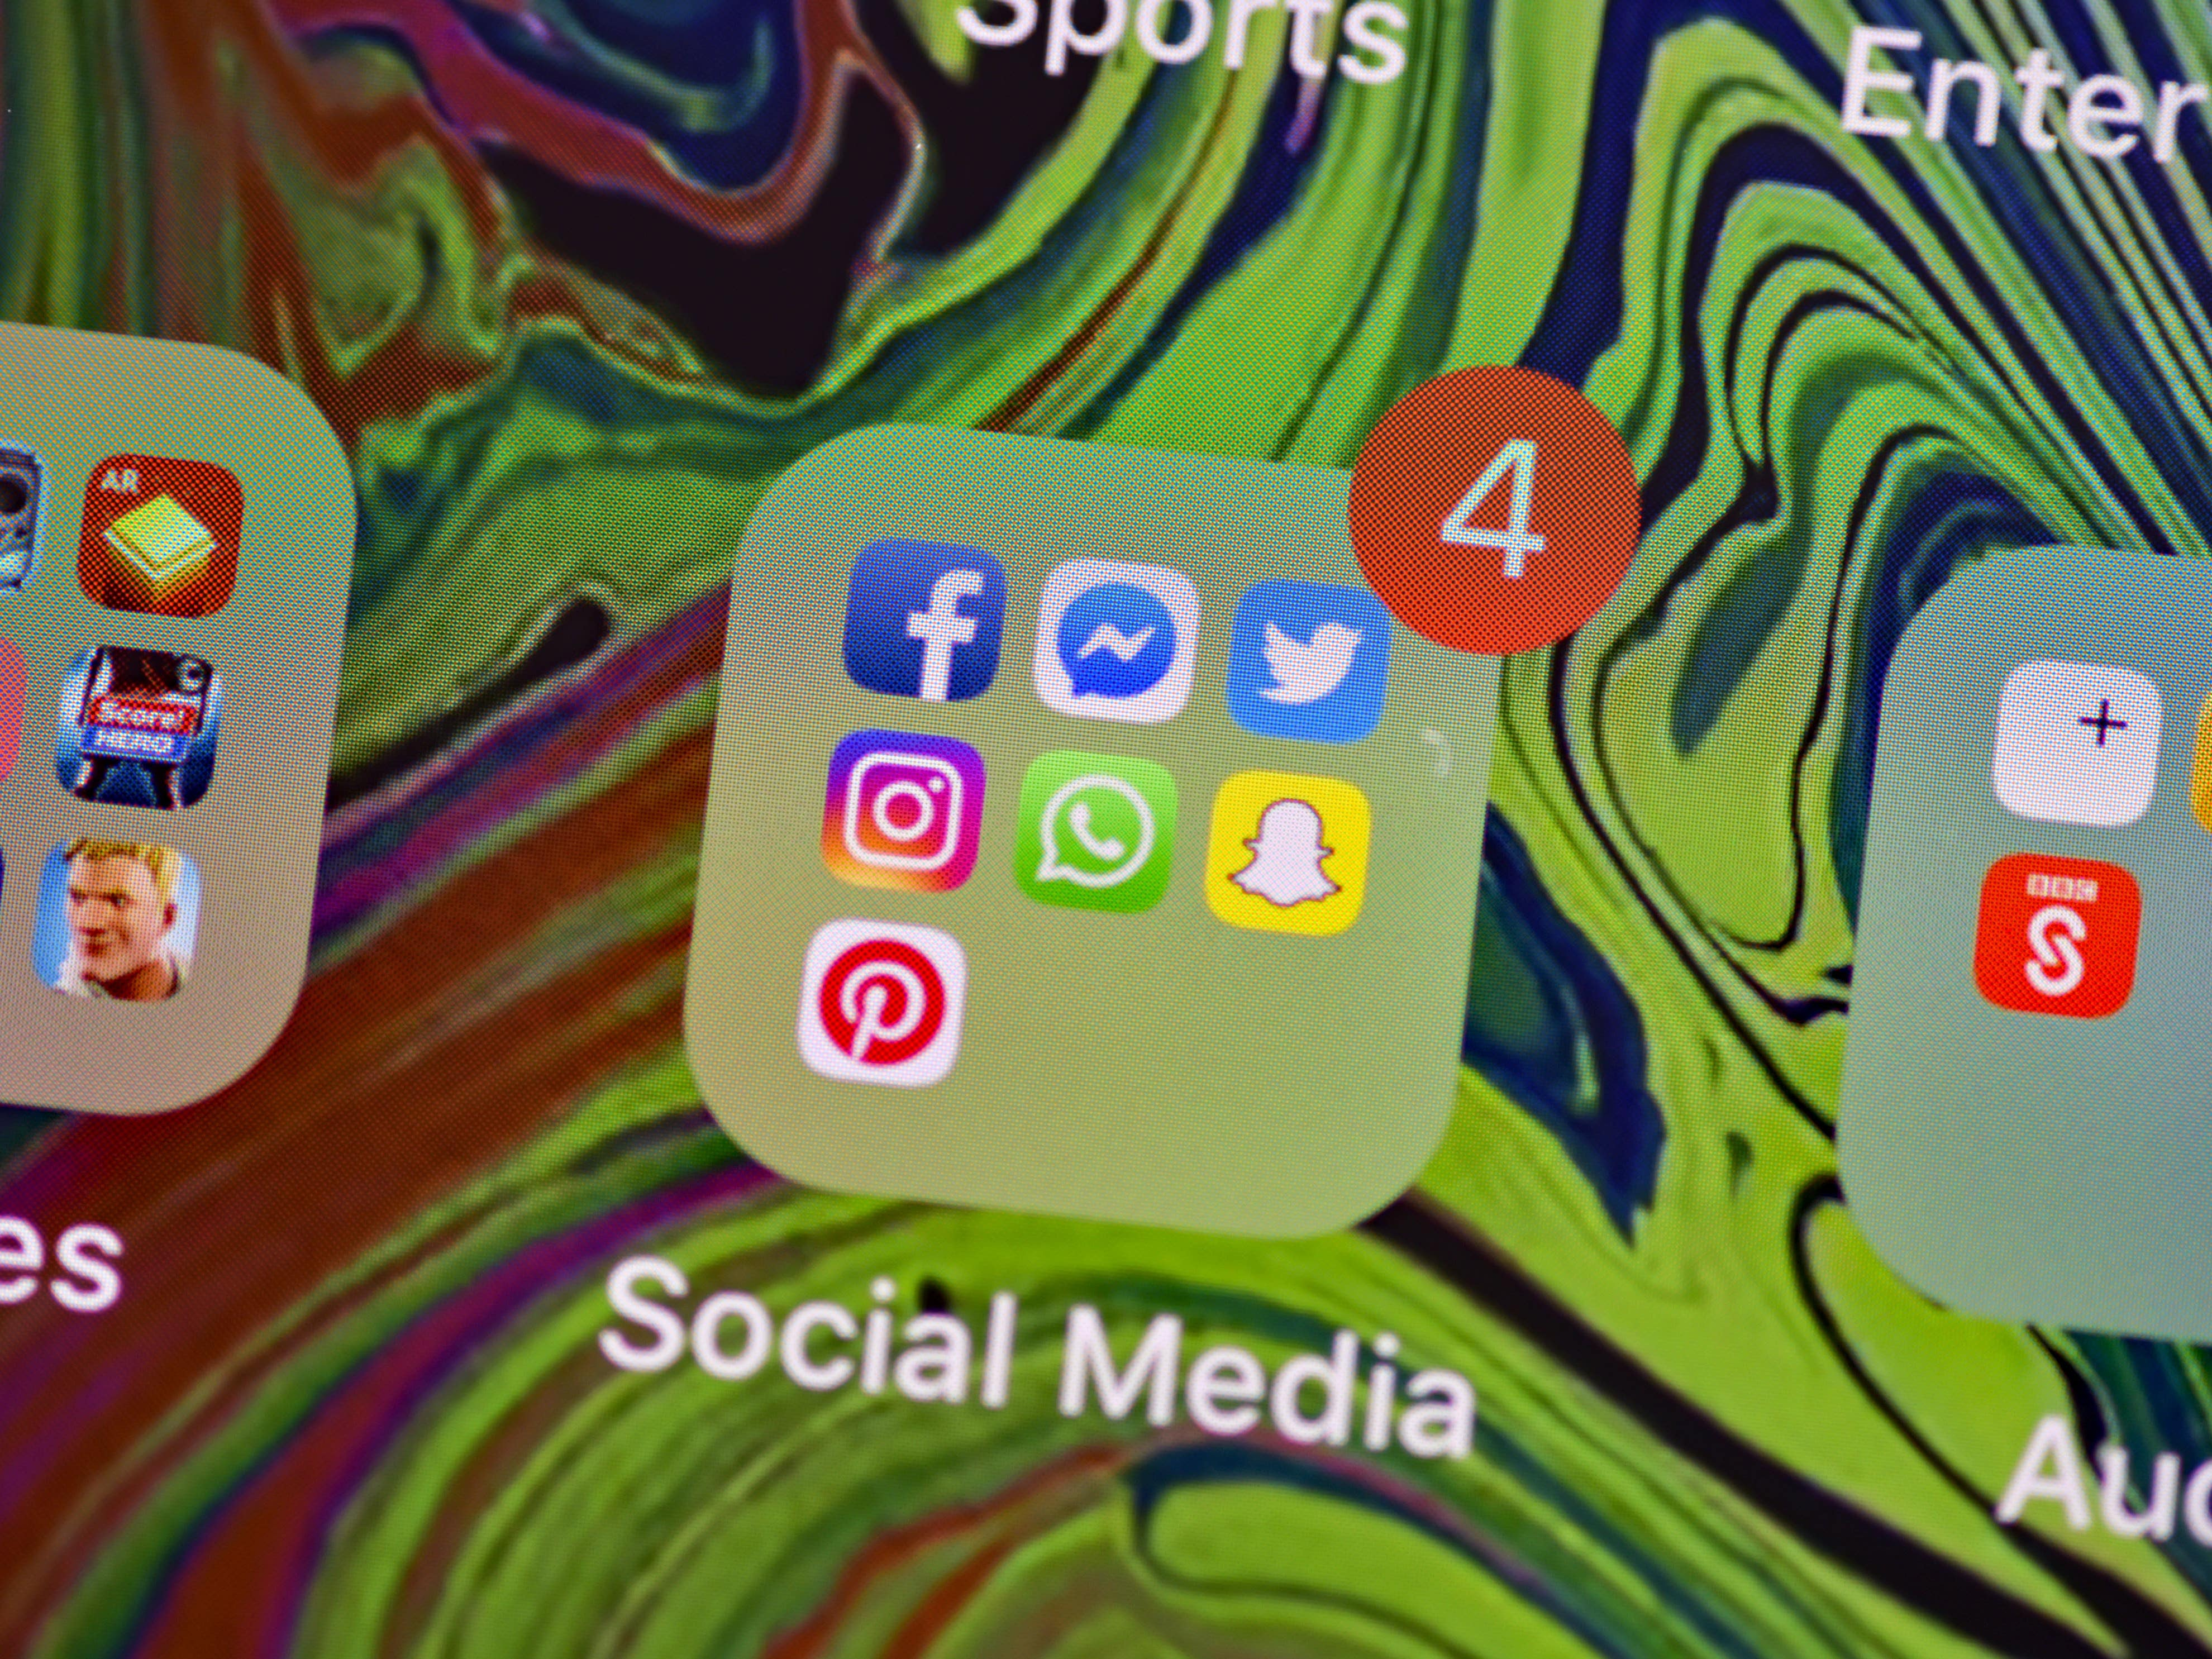 A picture of a mobile phone with social media apps